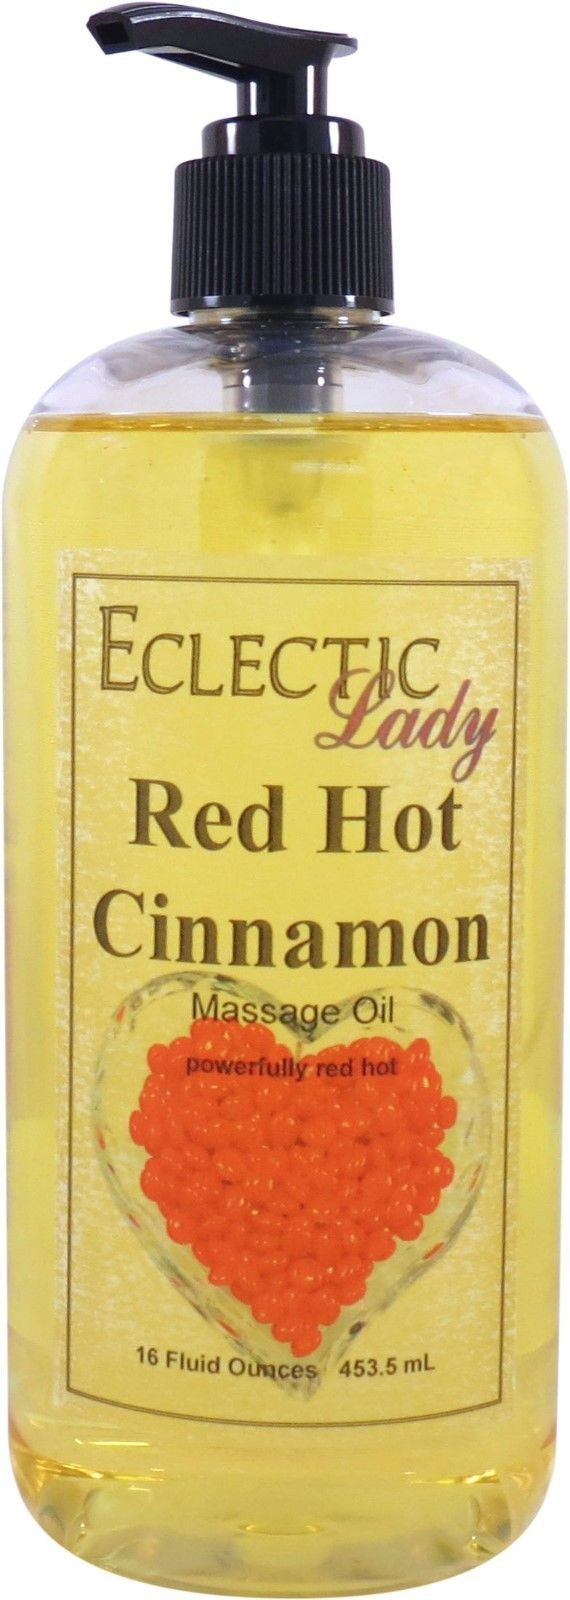 Red Hot Cinnamon Massage Oil